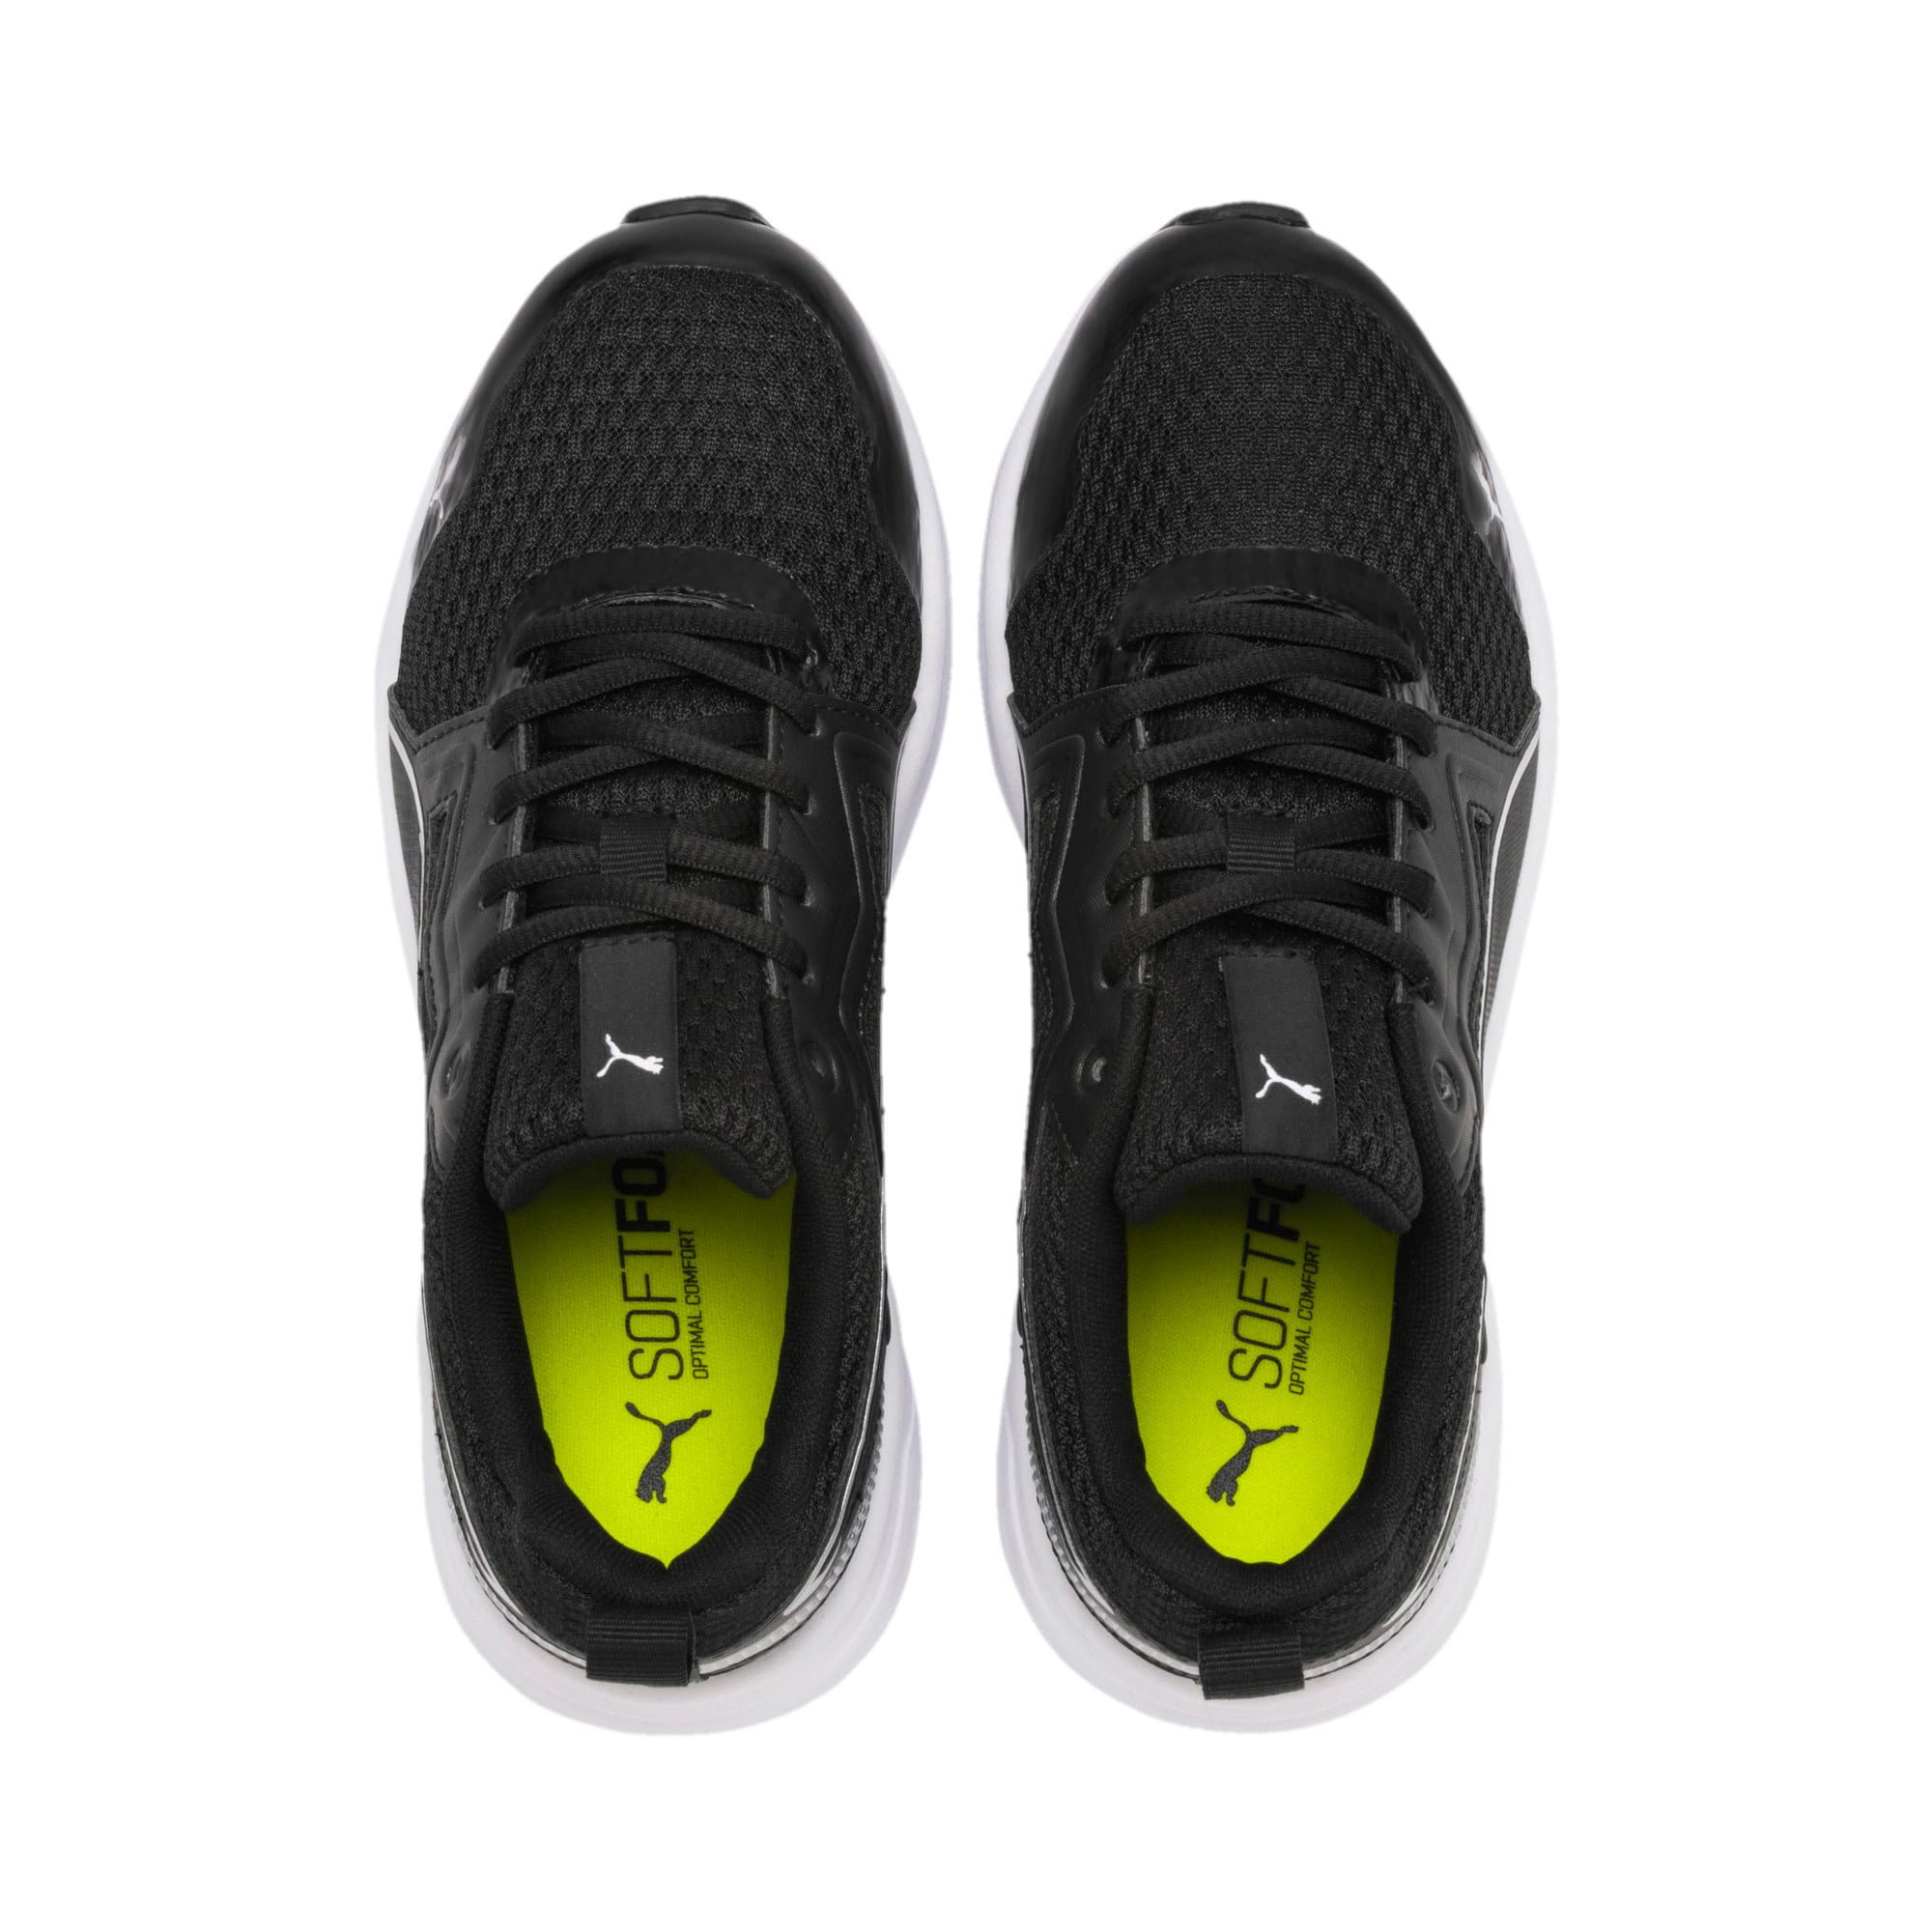 Thumbnail 6 of Pure Jogger Youth Trainers, Black-Silver-Wht-Nrgy Yellow, medium-IND